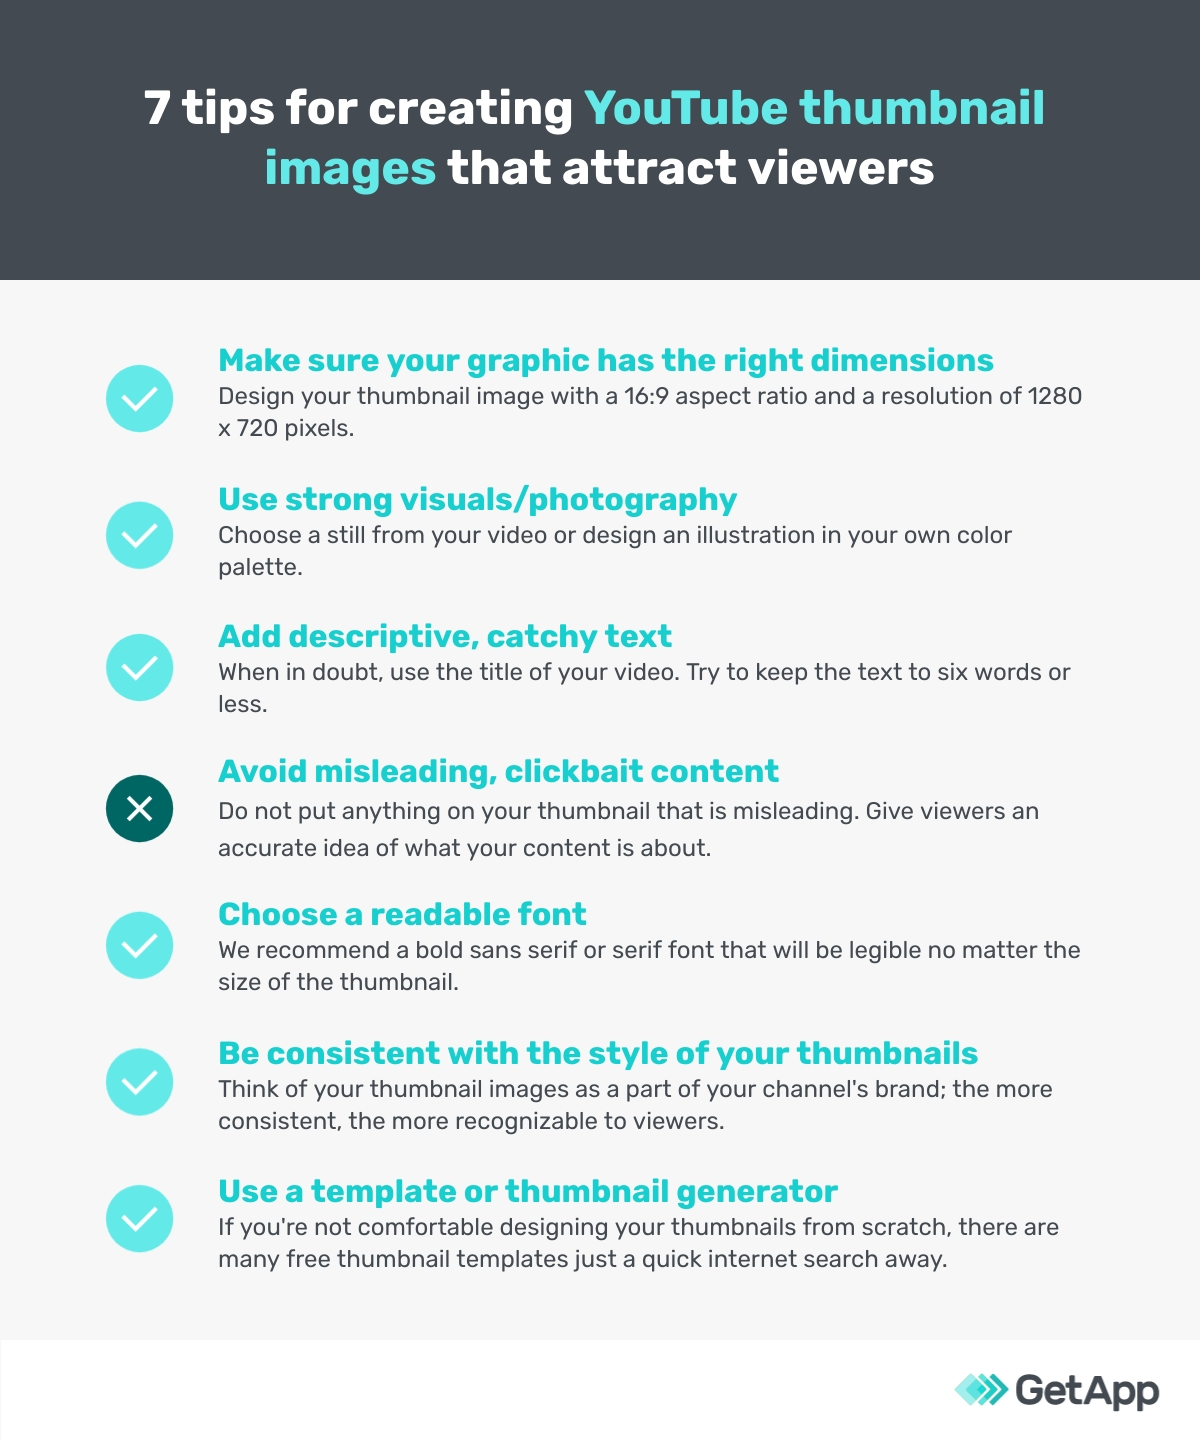 7 tips for creating YouTube thumbnail images that attract viewers